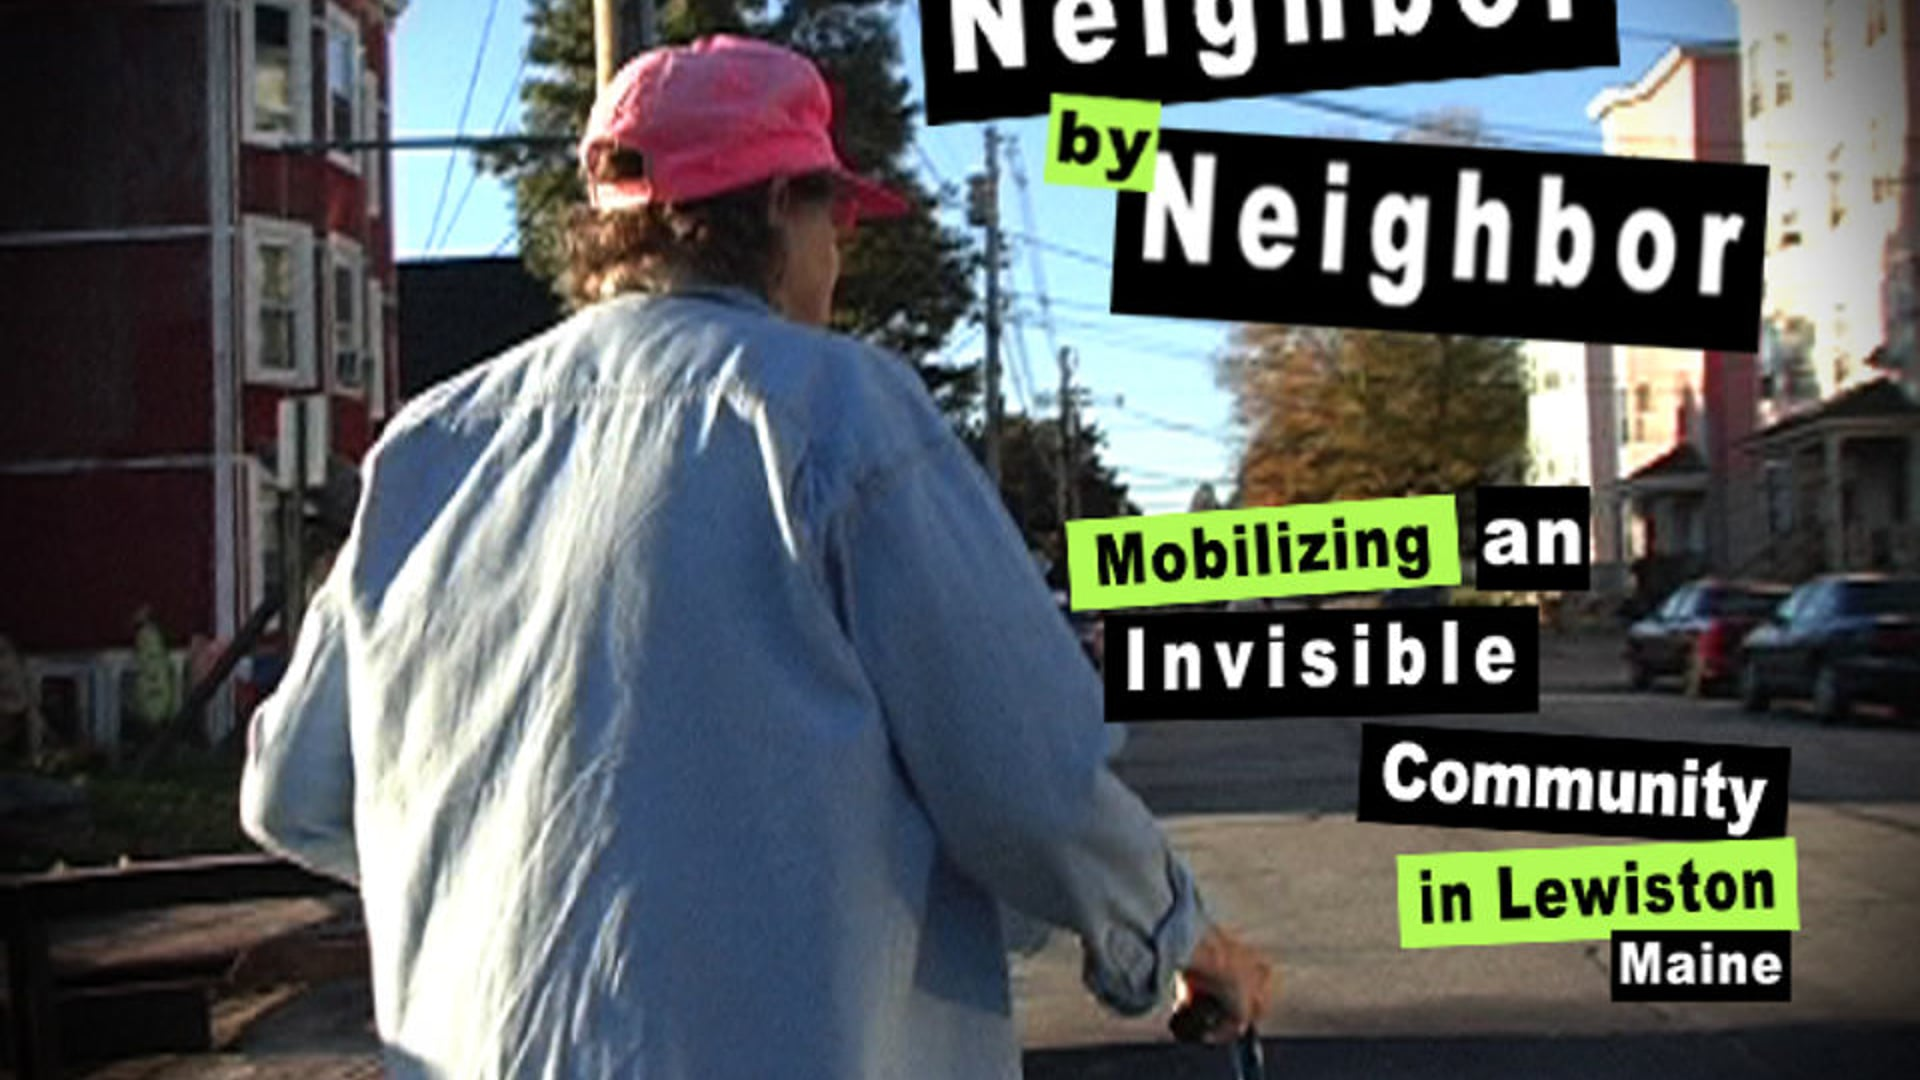 Neighbor by Neighbor: Mobilizing an Invisible Community in Lewiston, ME